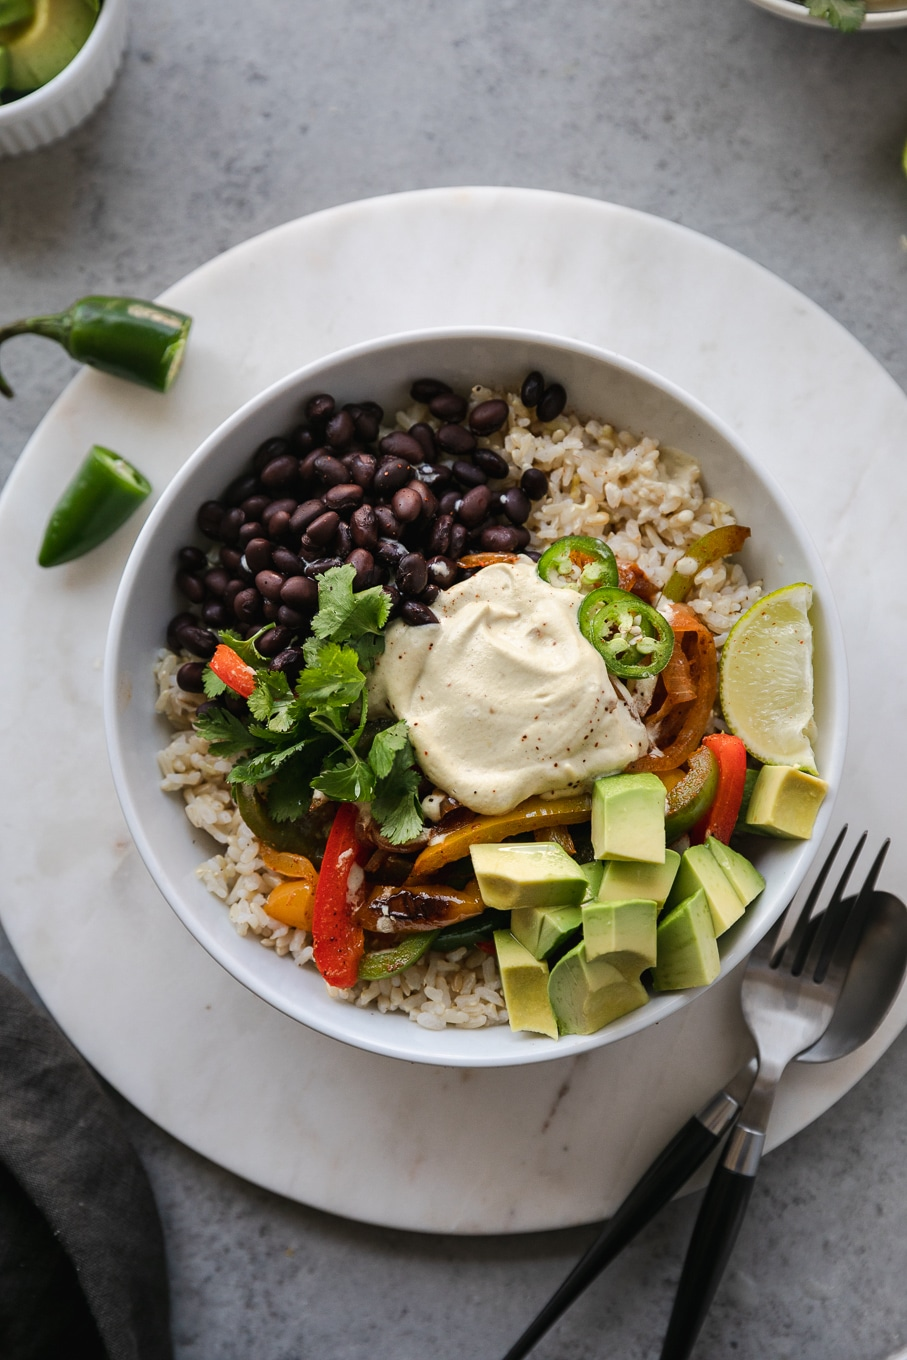 Overhead shot of a burrito bowl filled with brown rice, black beans, fajita veggies, avocado, lime, cilantro and cashew queso